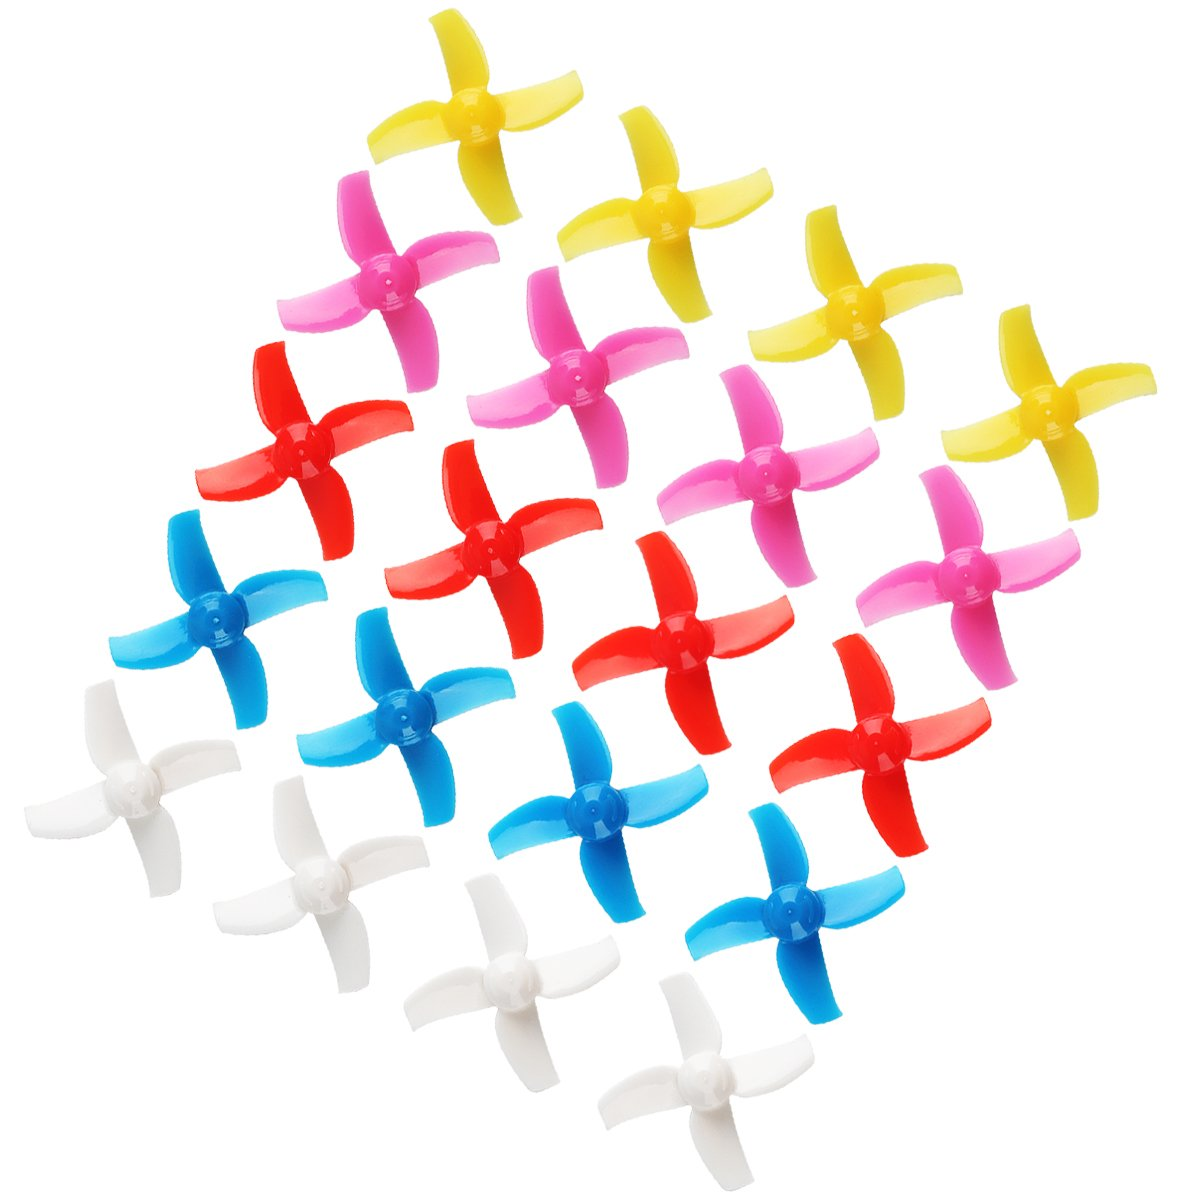 Crazepony 20pcs 40mm Four-Blade 4 Blade Propellers for Inductrix FPV Plus Tiny 7X Mini FPV Racing Drones Multirotors Quadcopters